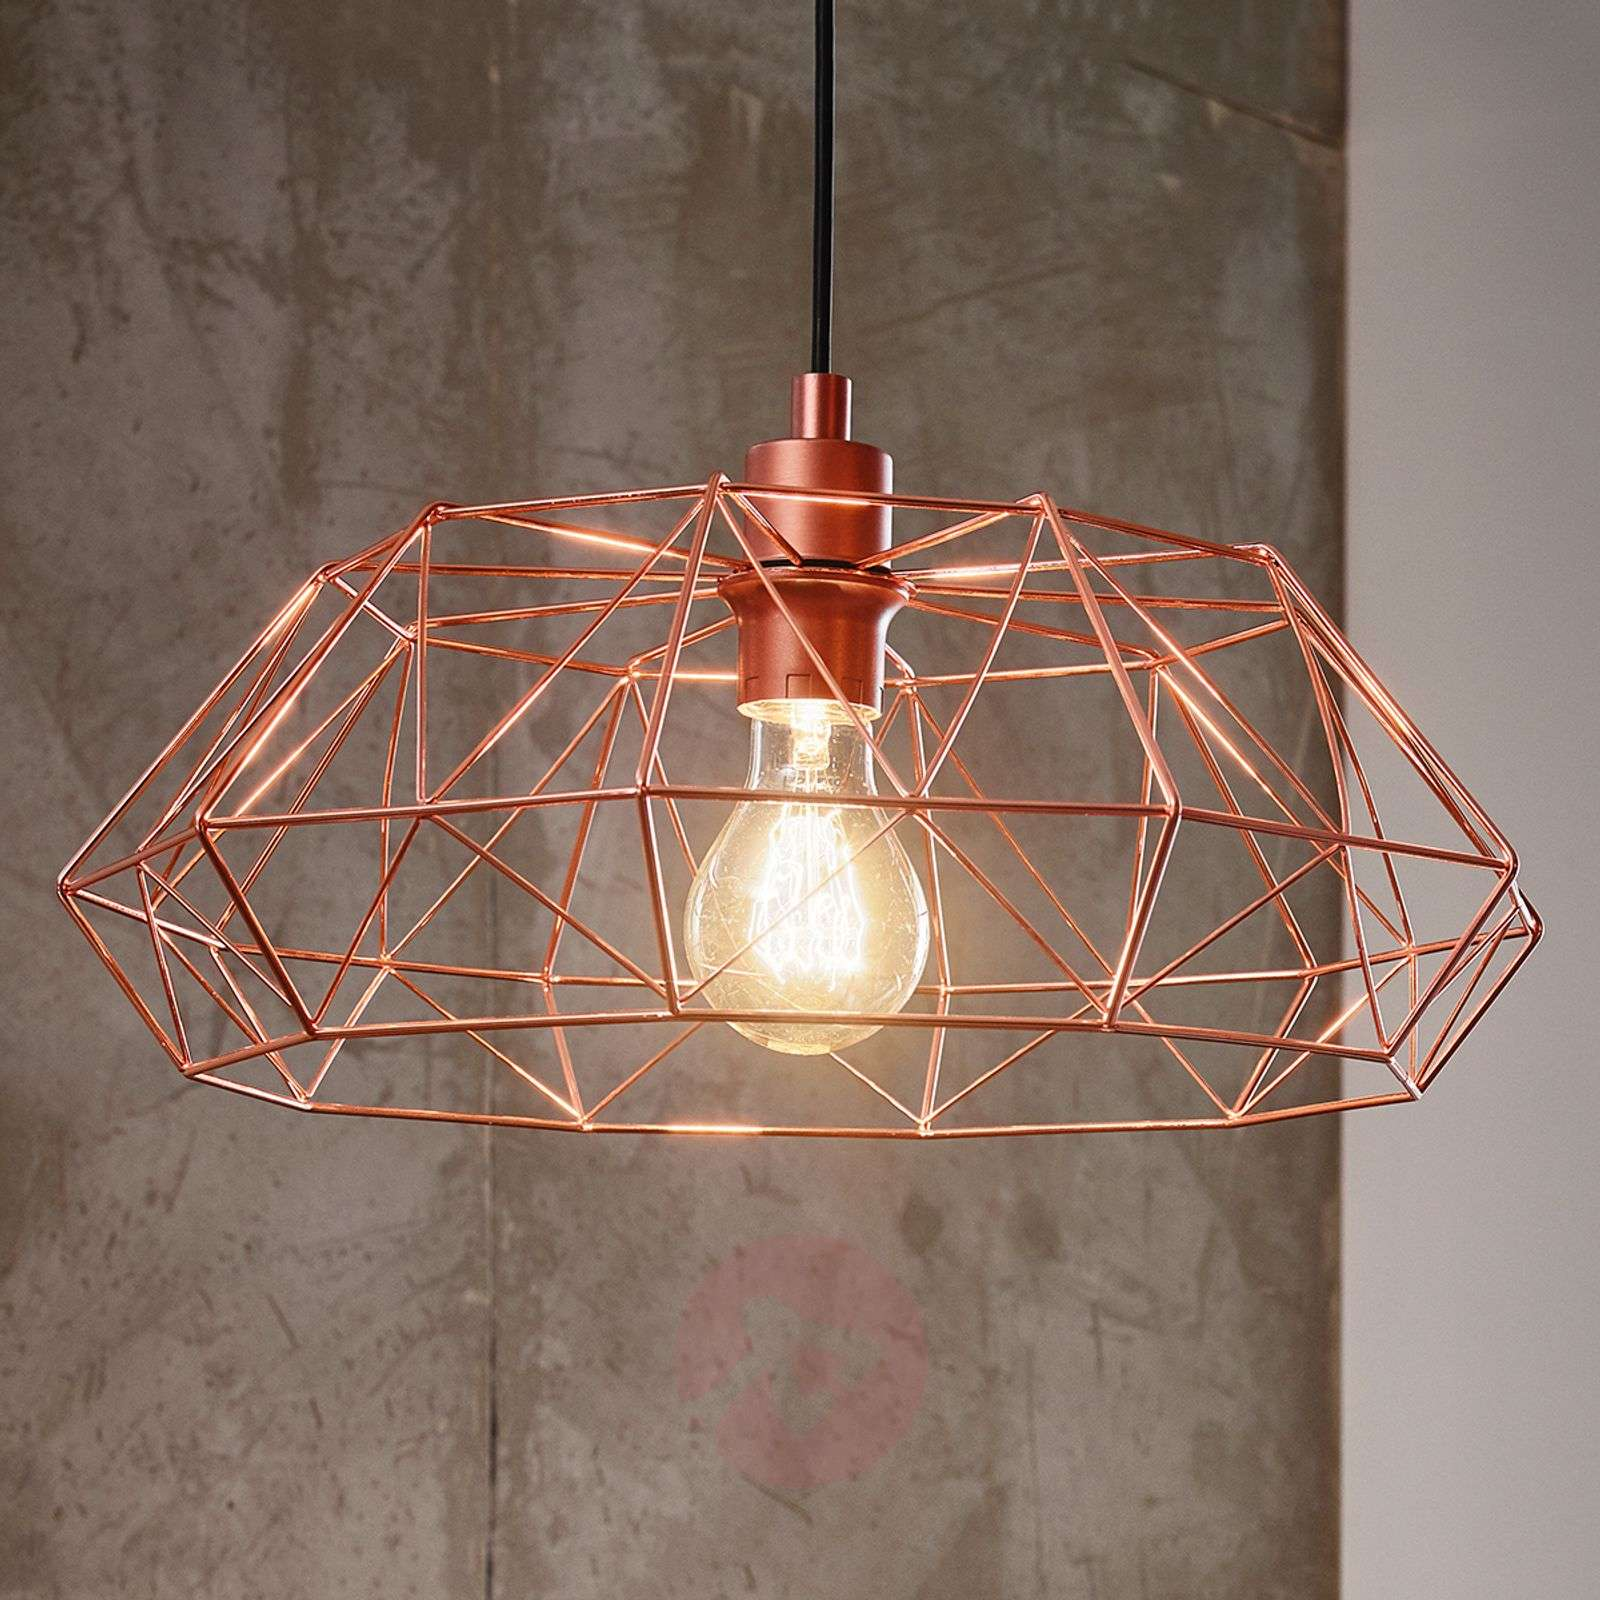 Carlton 2 hanging light in copper grid lampshade-3031868-01